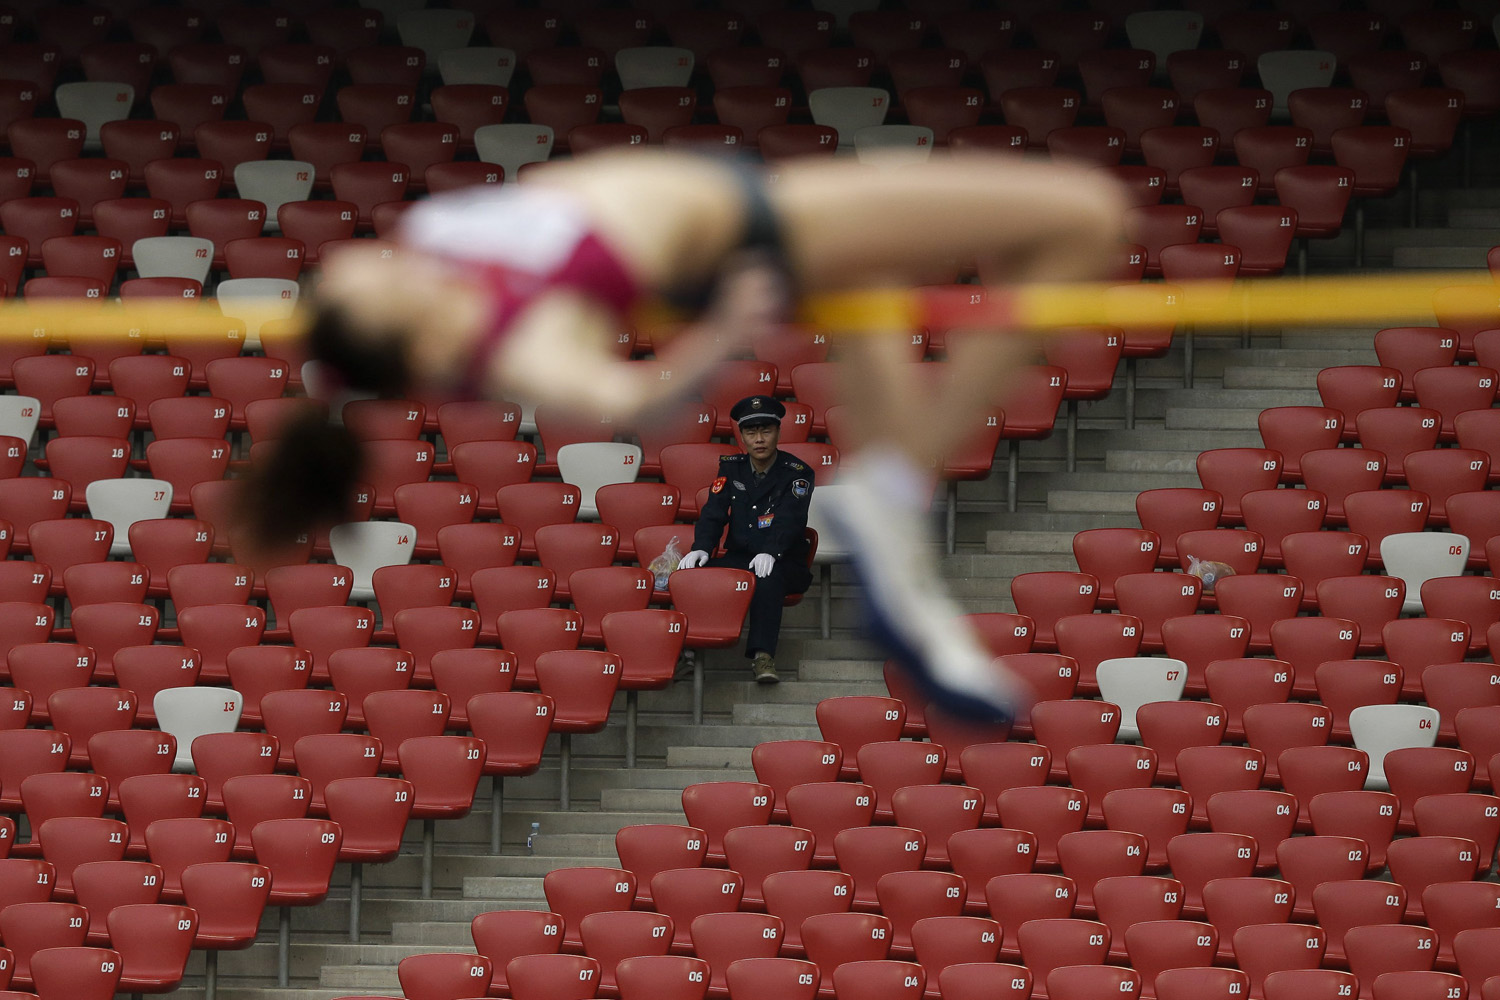 May 21, 2014. A security guard watches as Russia's Elena Slesarenko, front, makes an attempt at the women's high jump during the 2014 IAAF World Challenge Beijing held at China's National Stadium in Beijing.